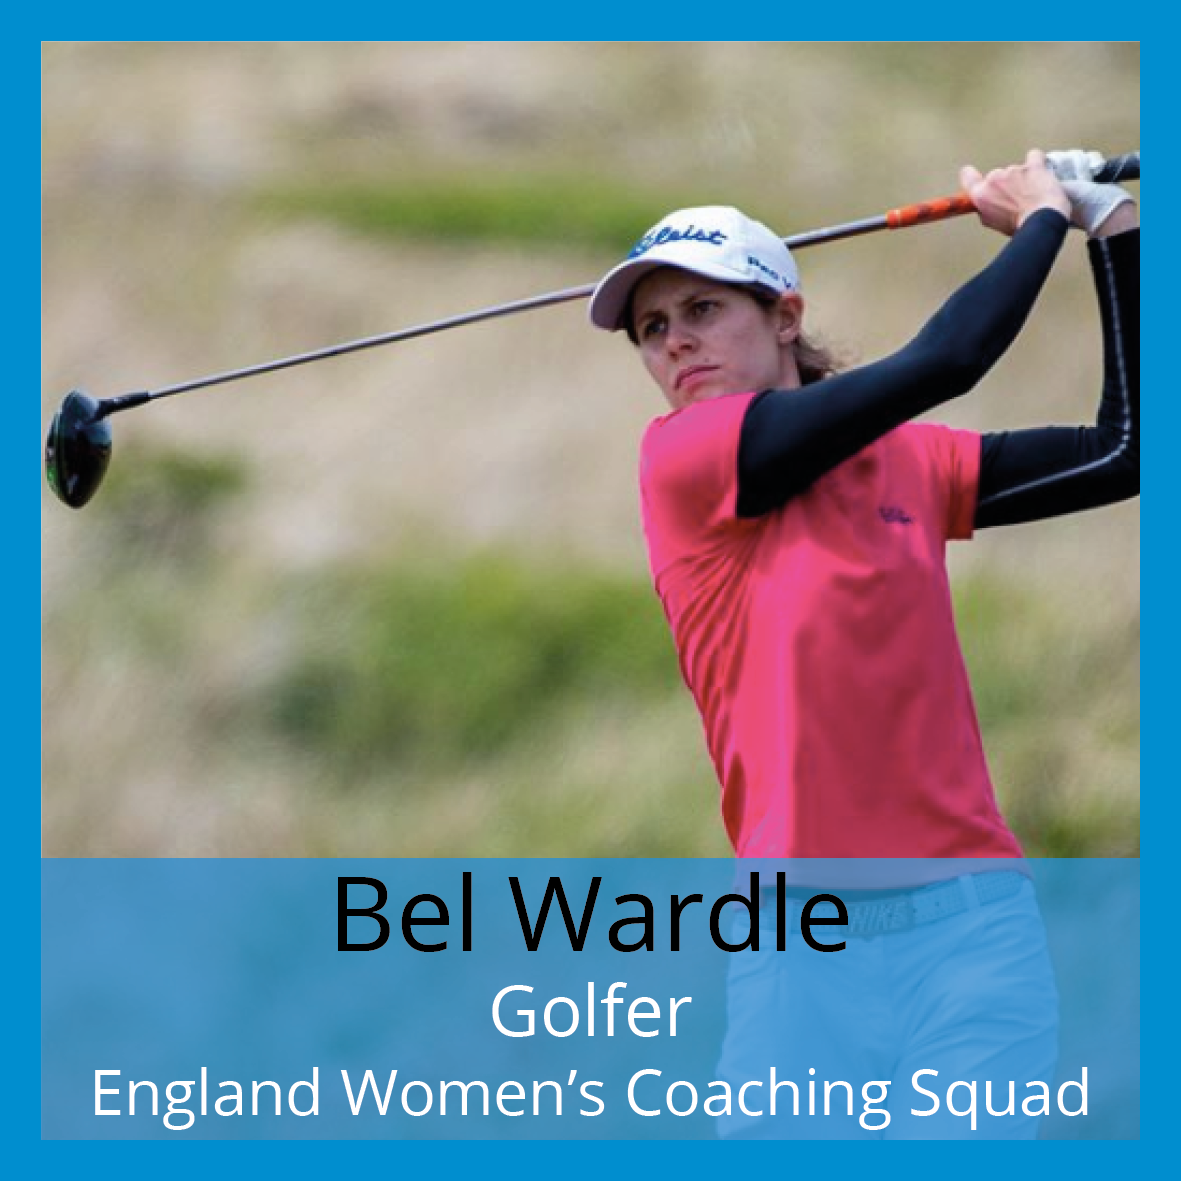 Bel Wardle